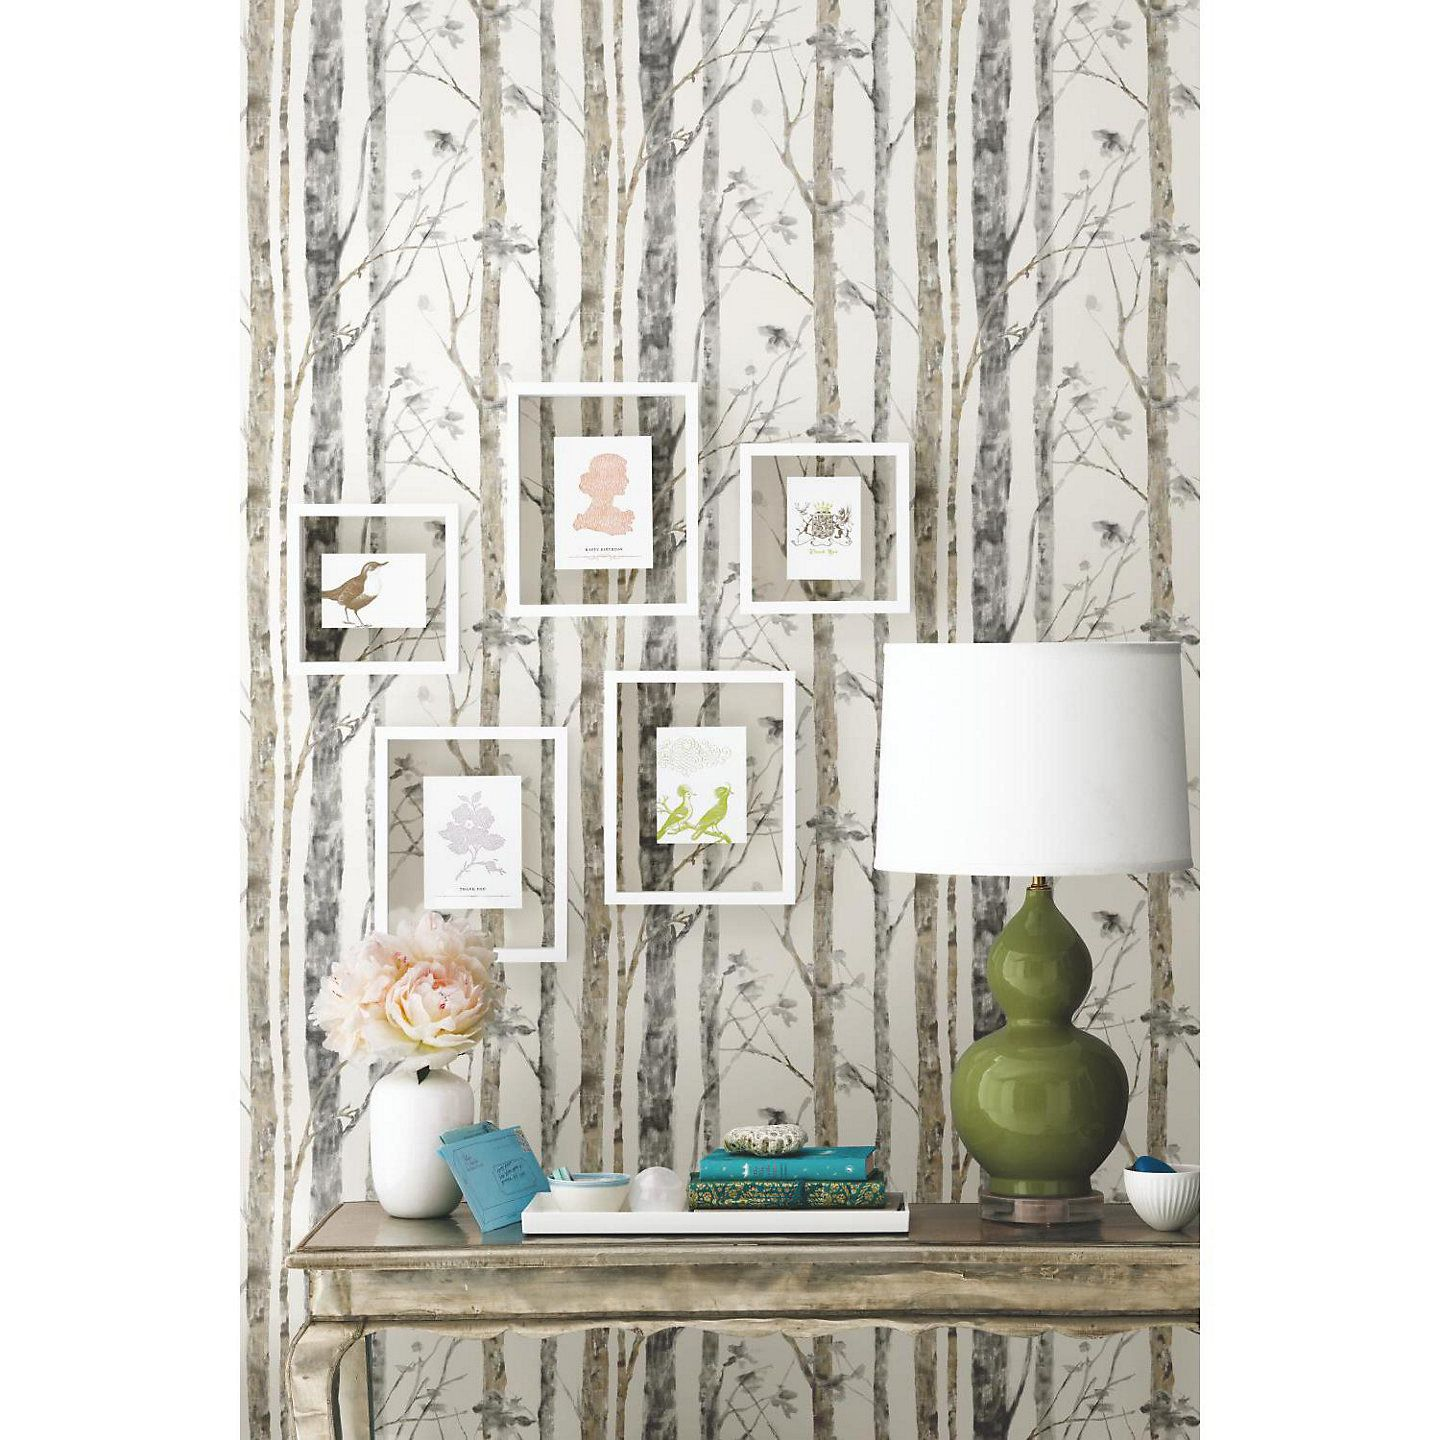 Roommates Faux Birch Trees Peel Stick Wallpaper Wall Decal Birch Tree Wallpaper Wall Wallpaper Peel And Stick Wallpaper